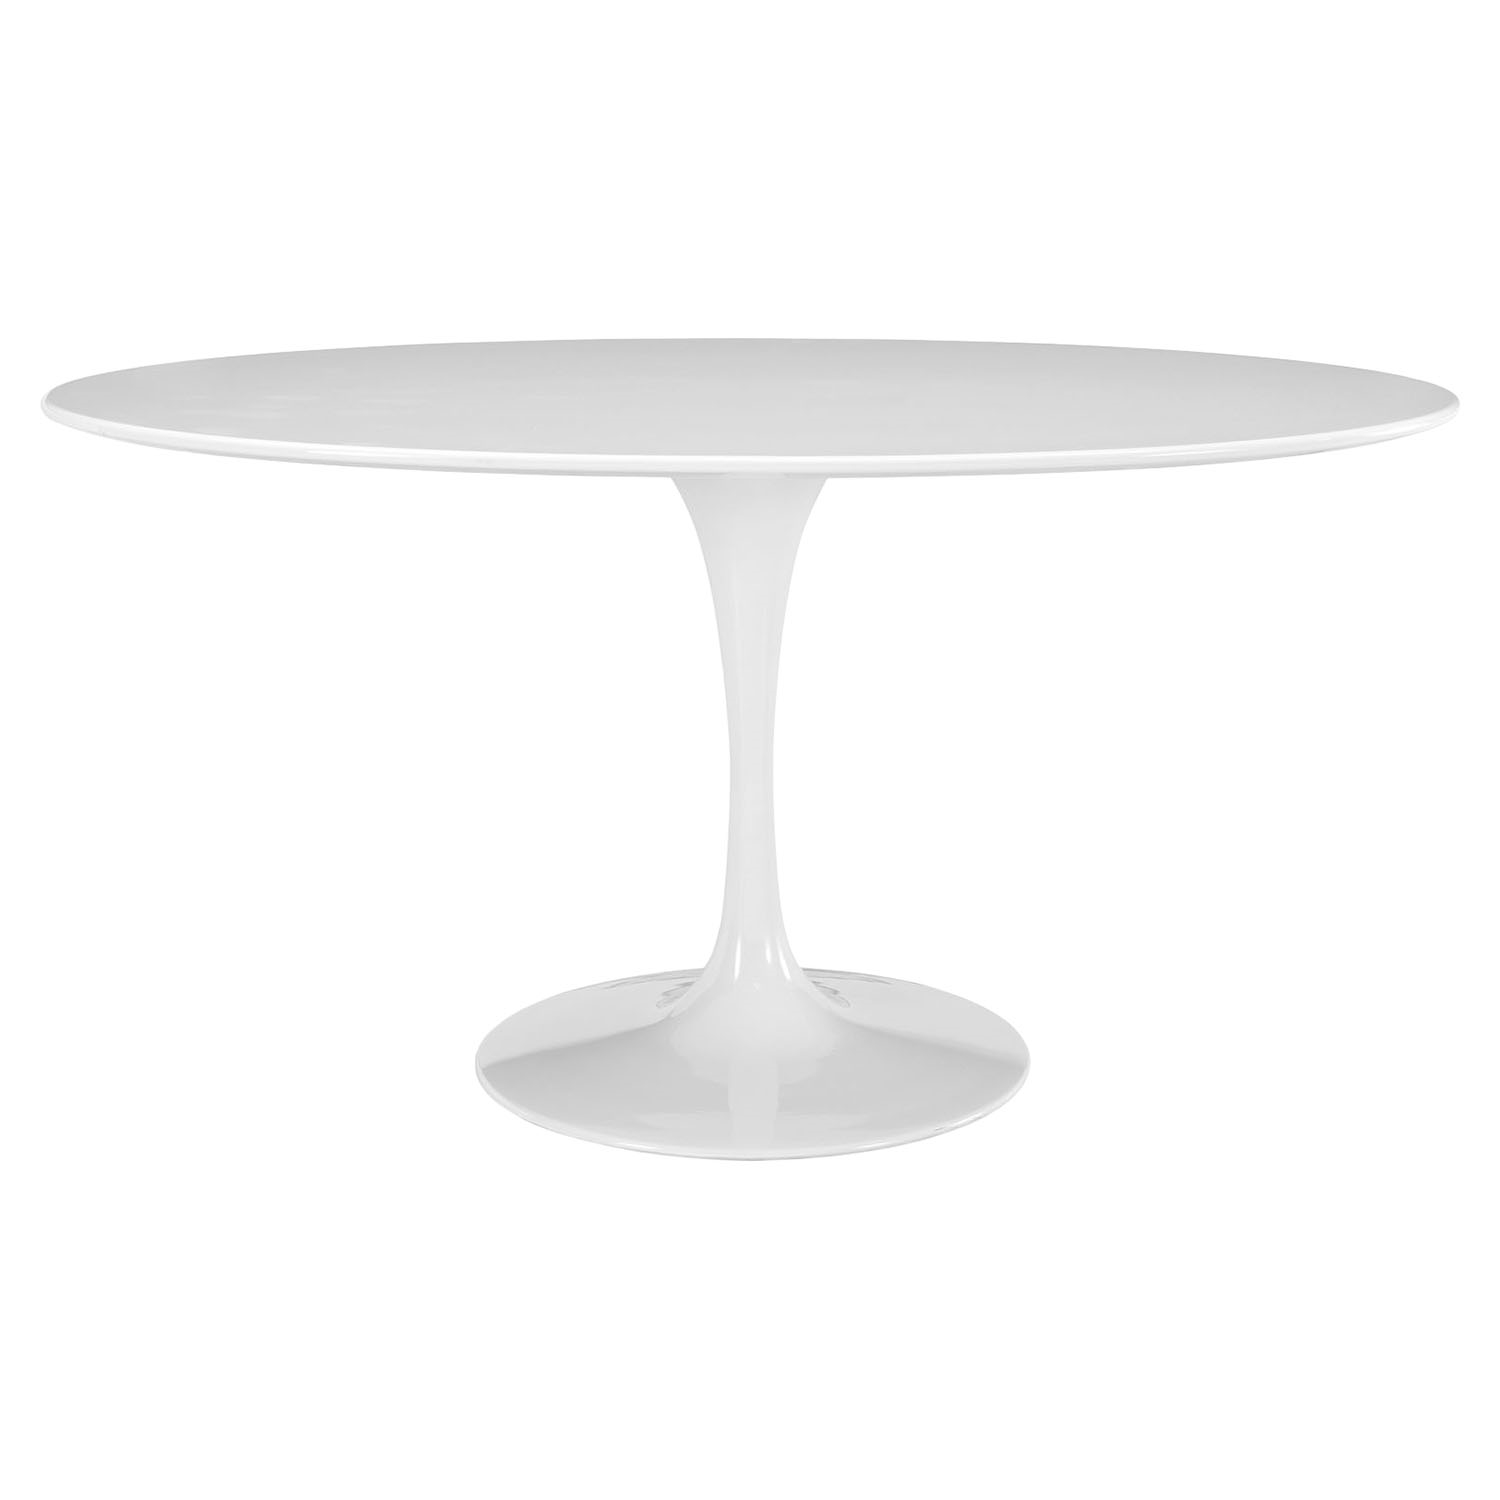 "Lippa 60"" Wood Top Dining Table - Oval, White - EEI-1121-WHI"